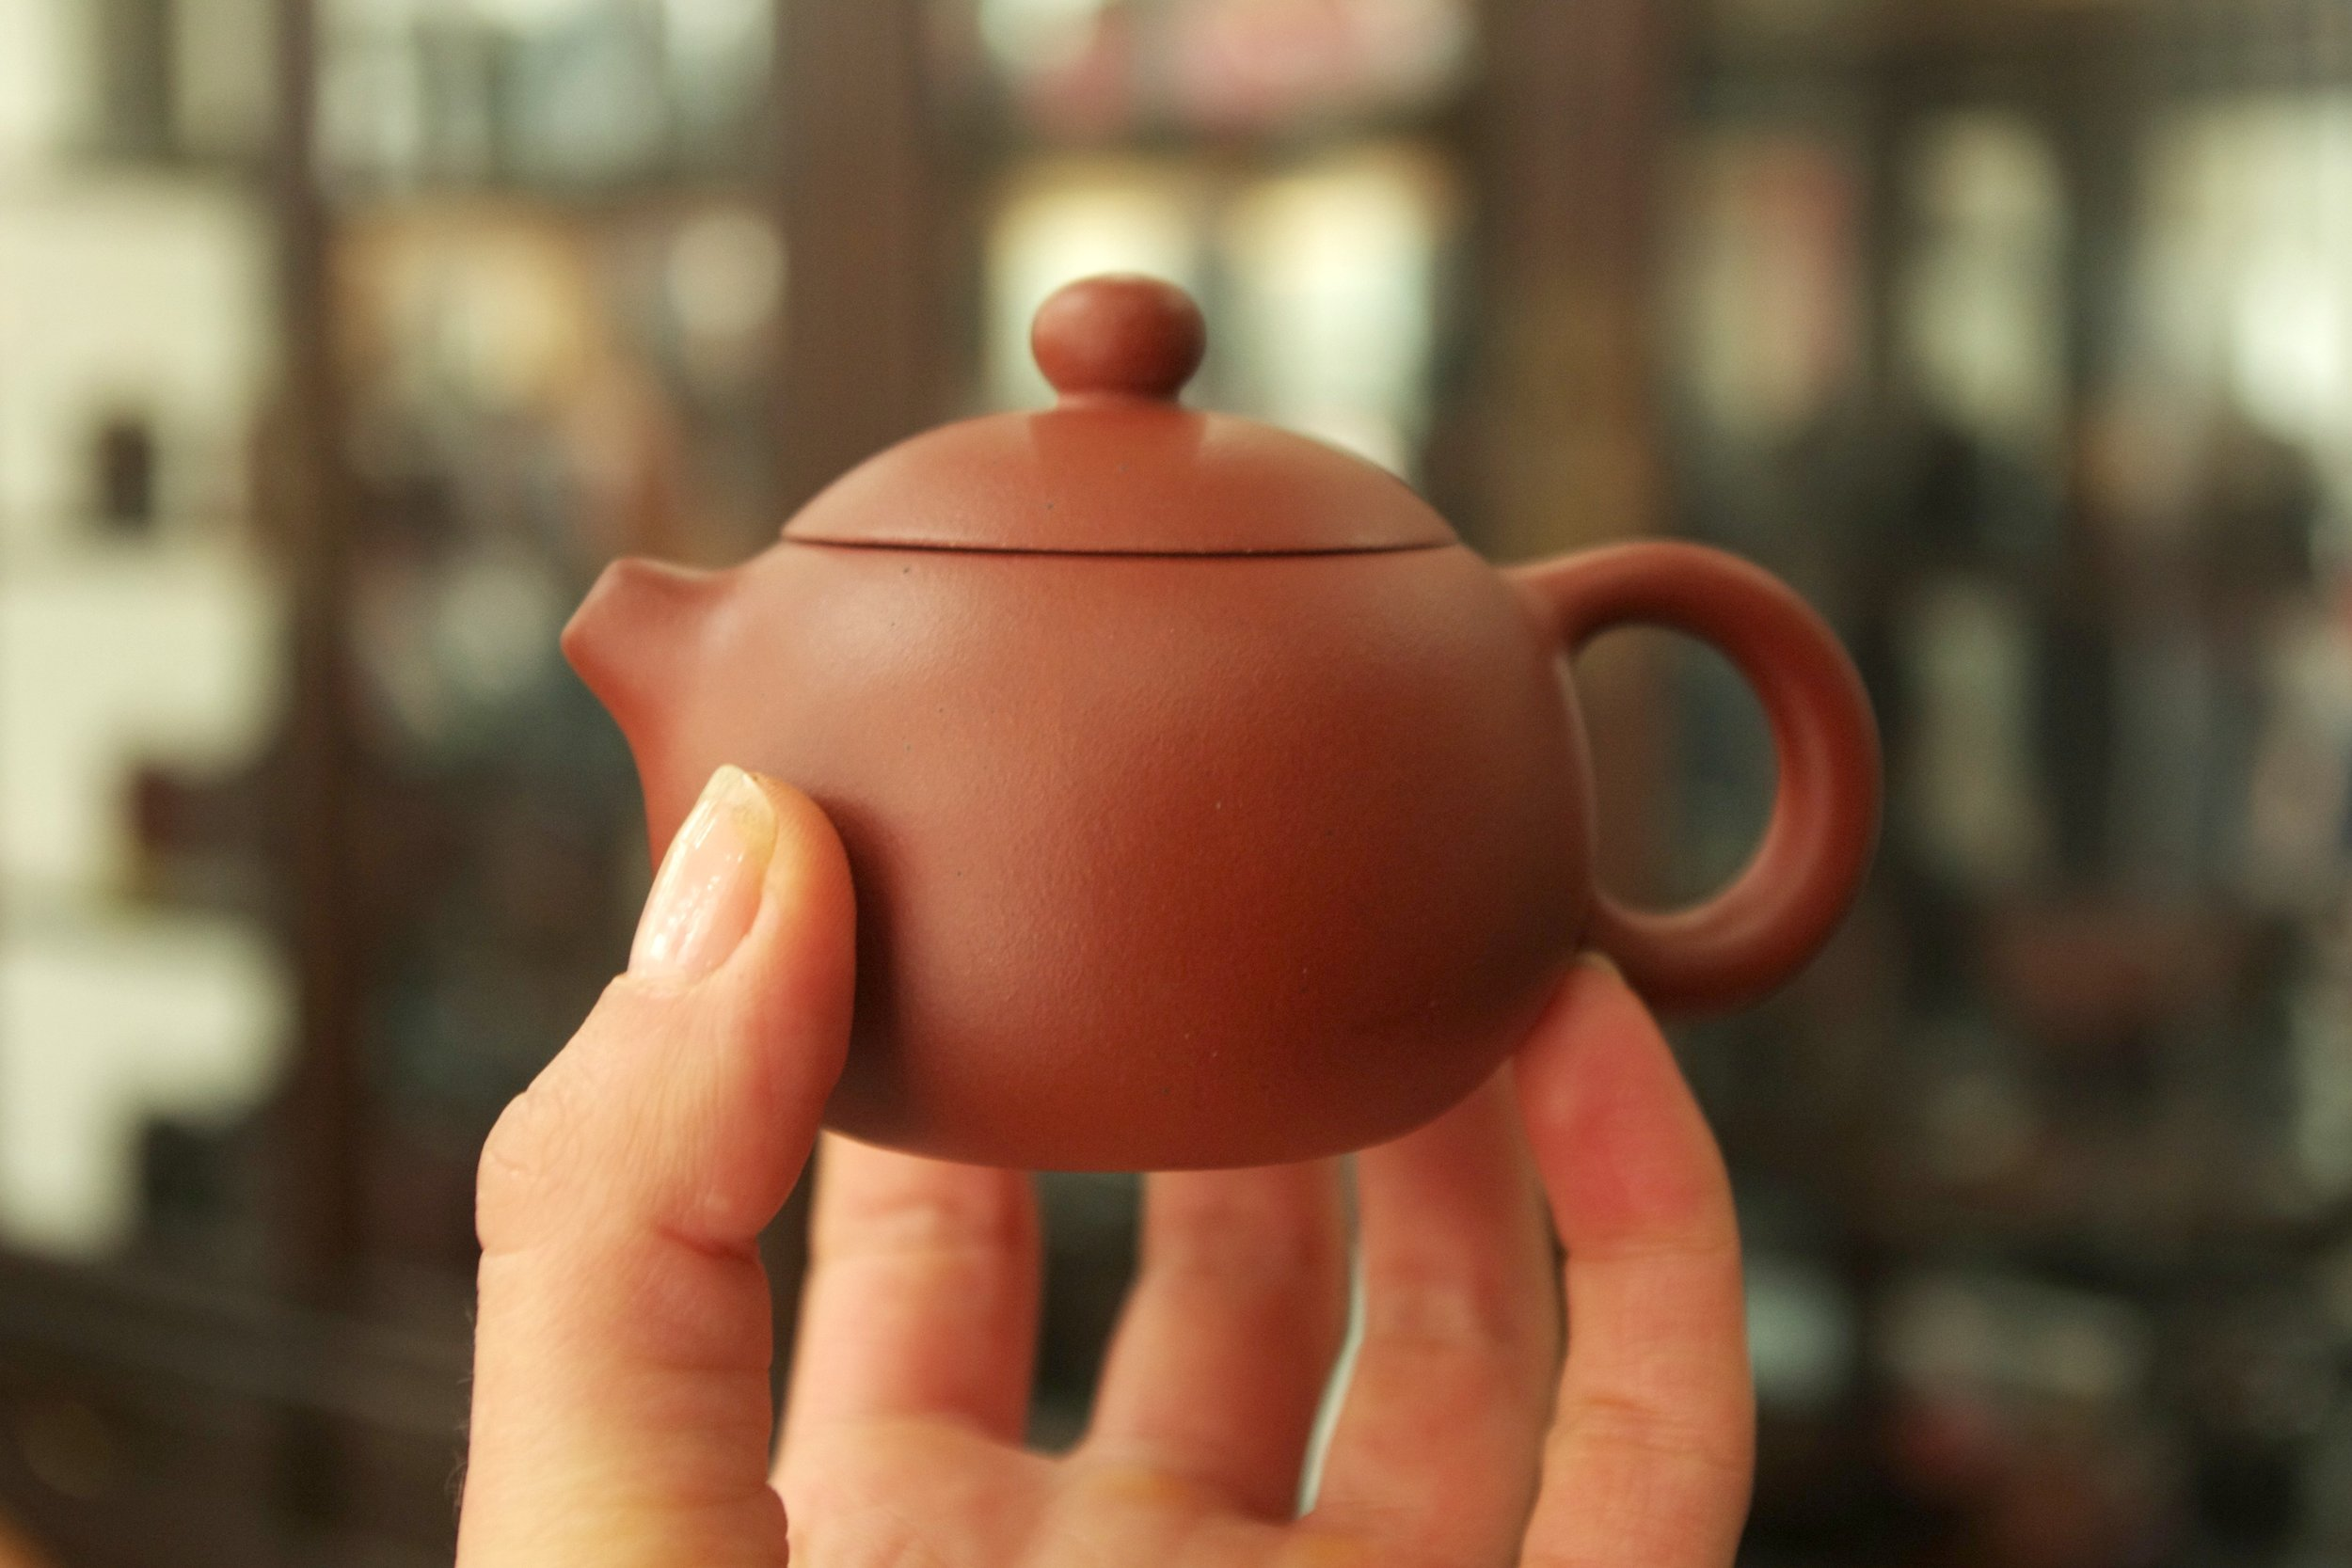 Yixing teapot in my fingers